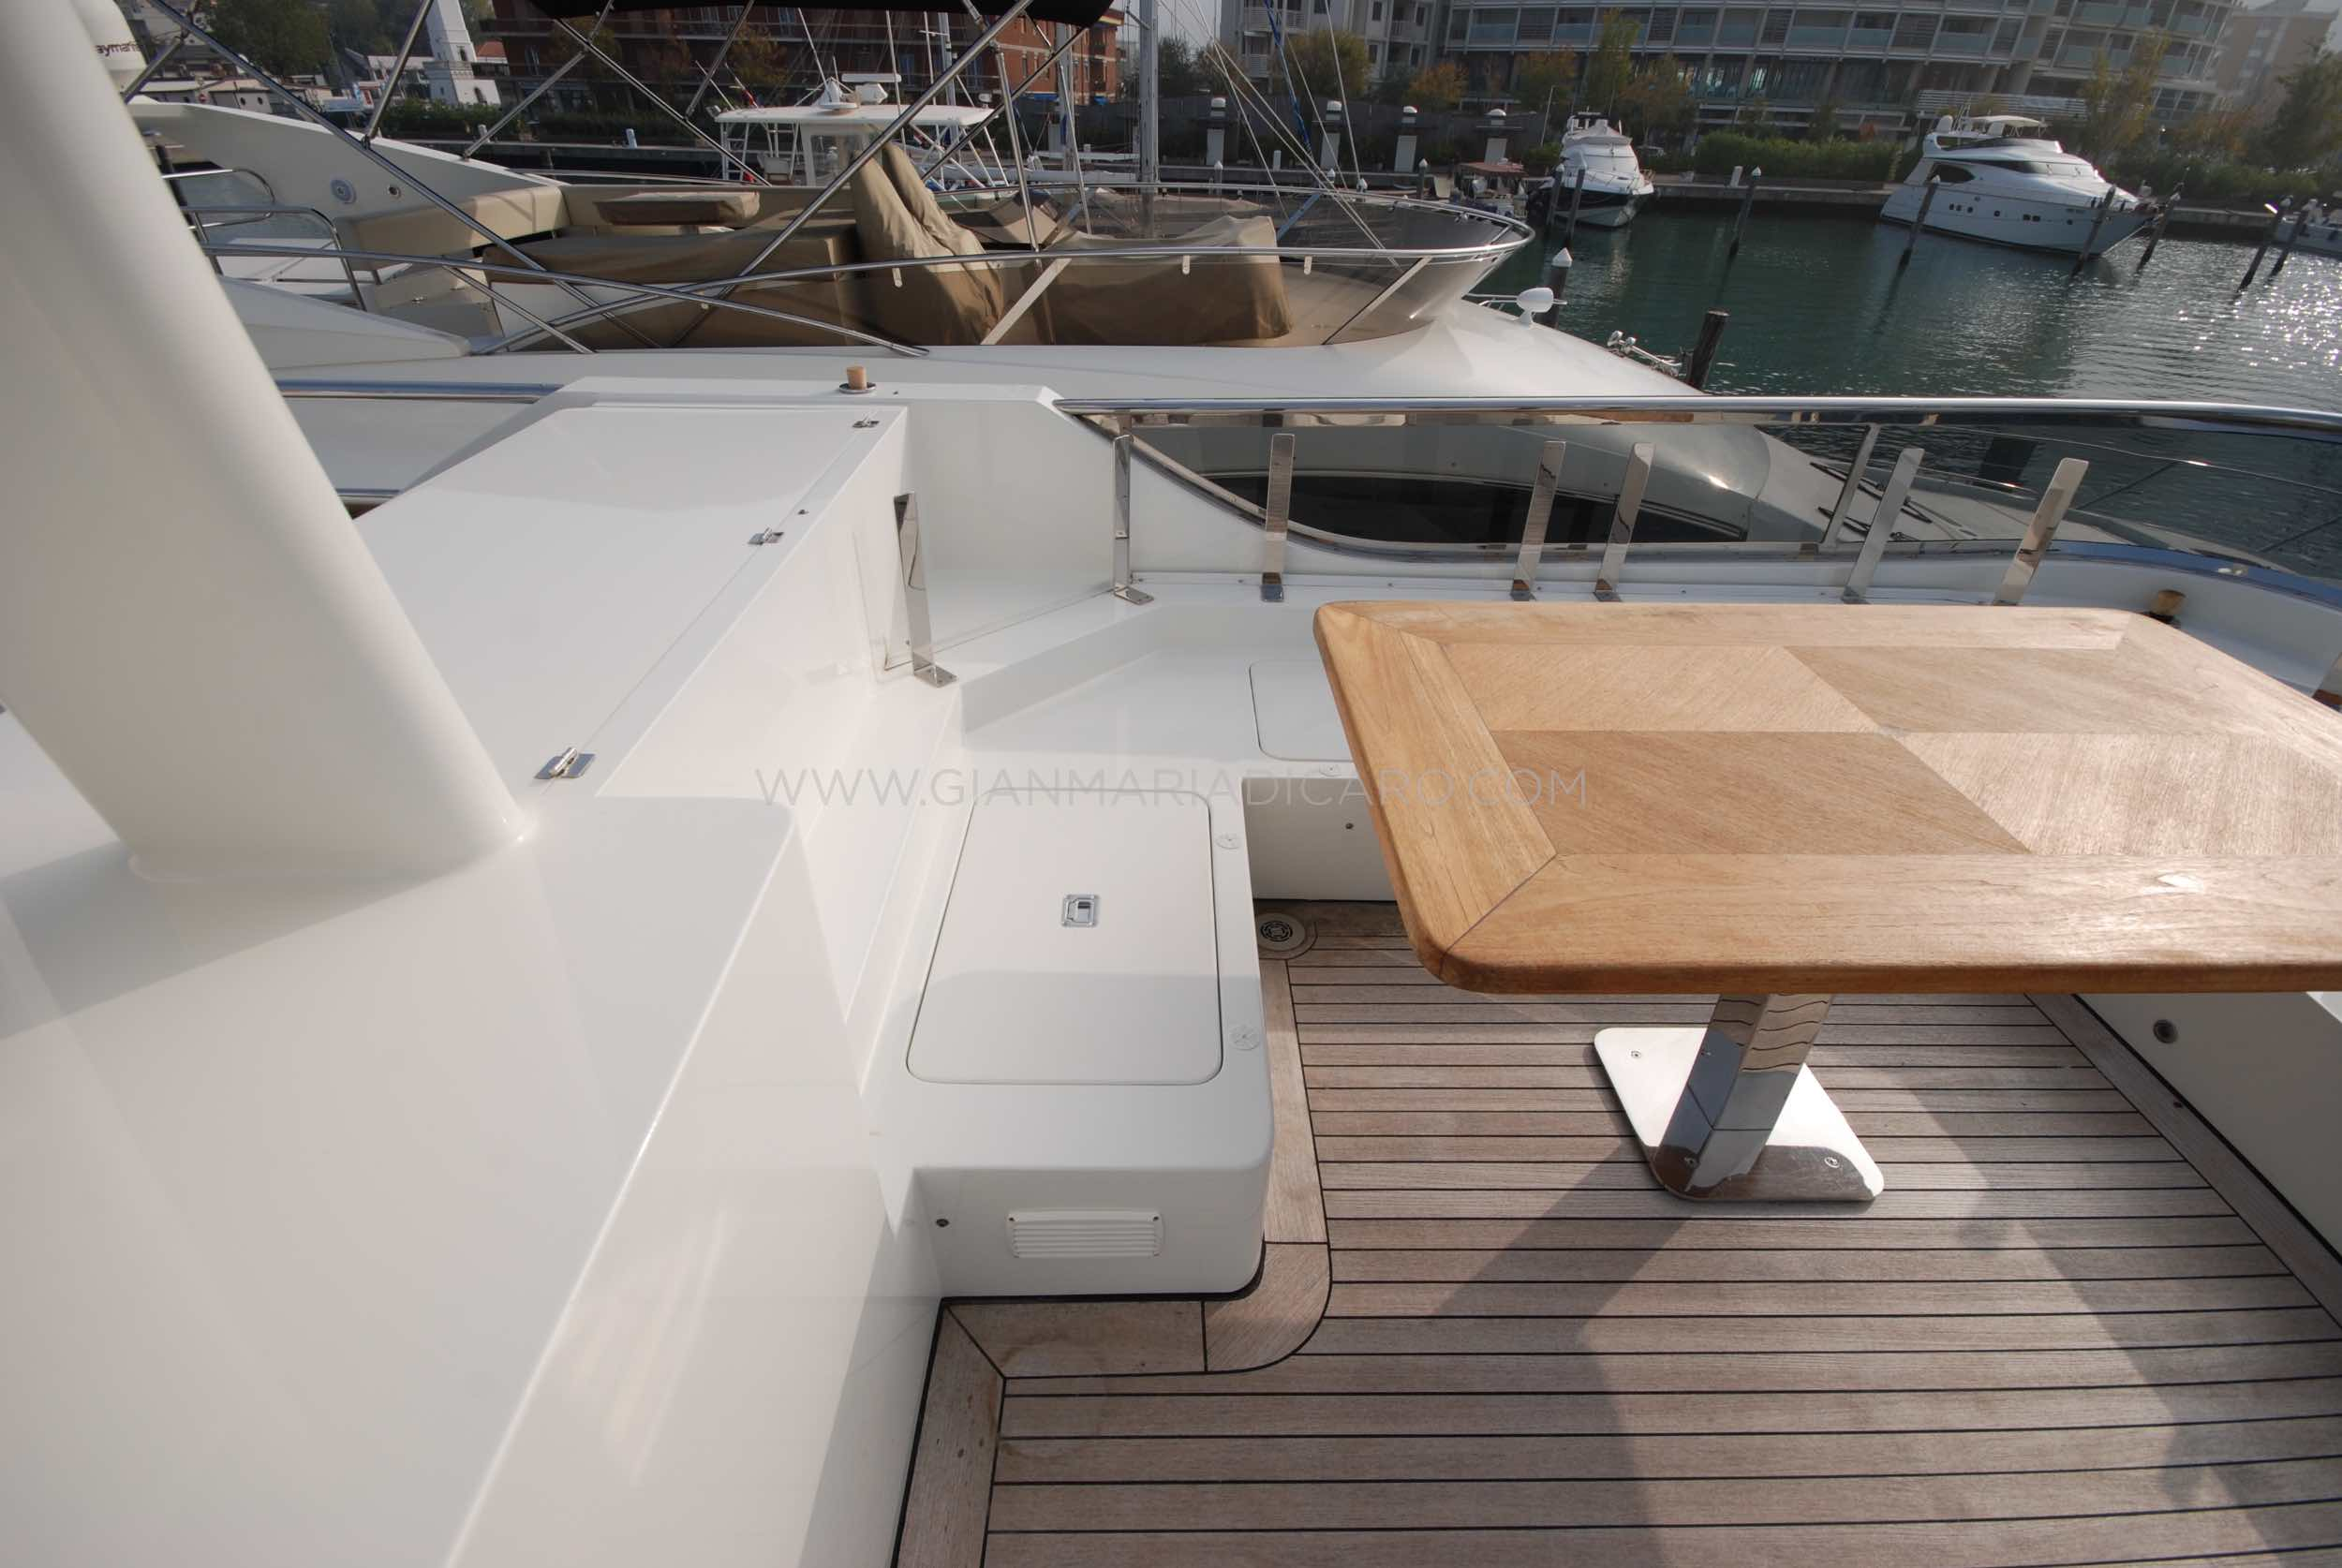 emys-yacht-22-unica-for-sale-101.jpg